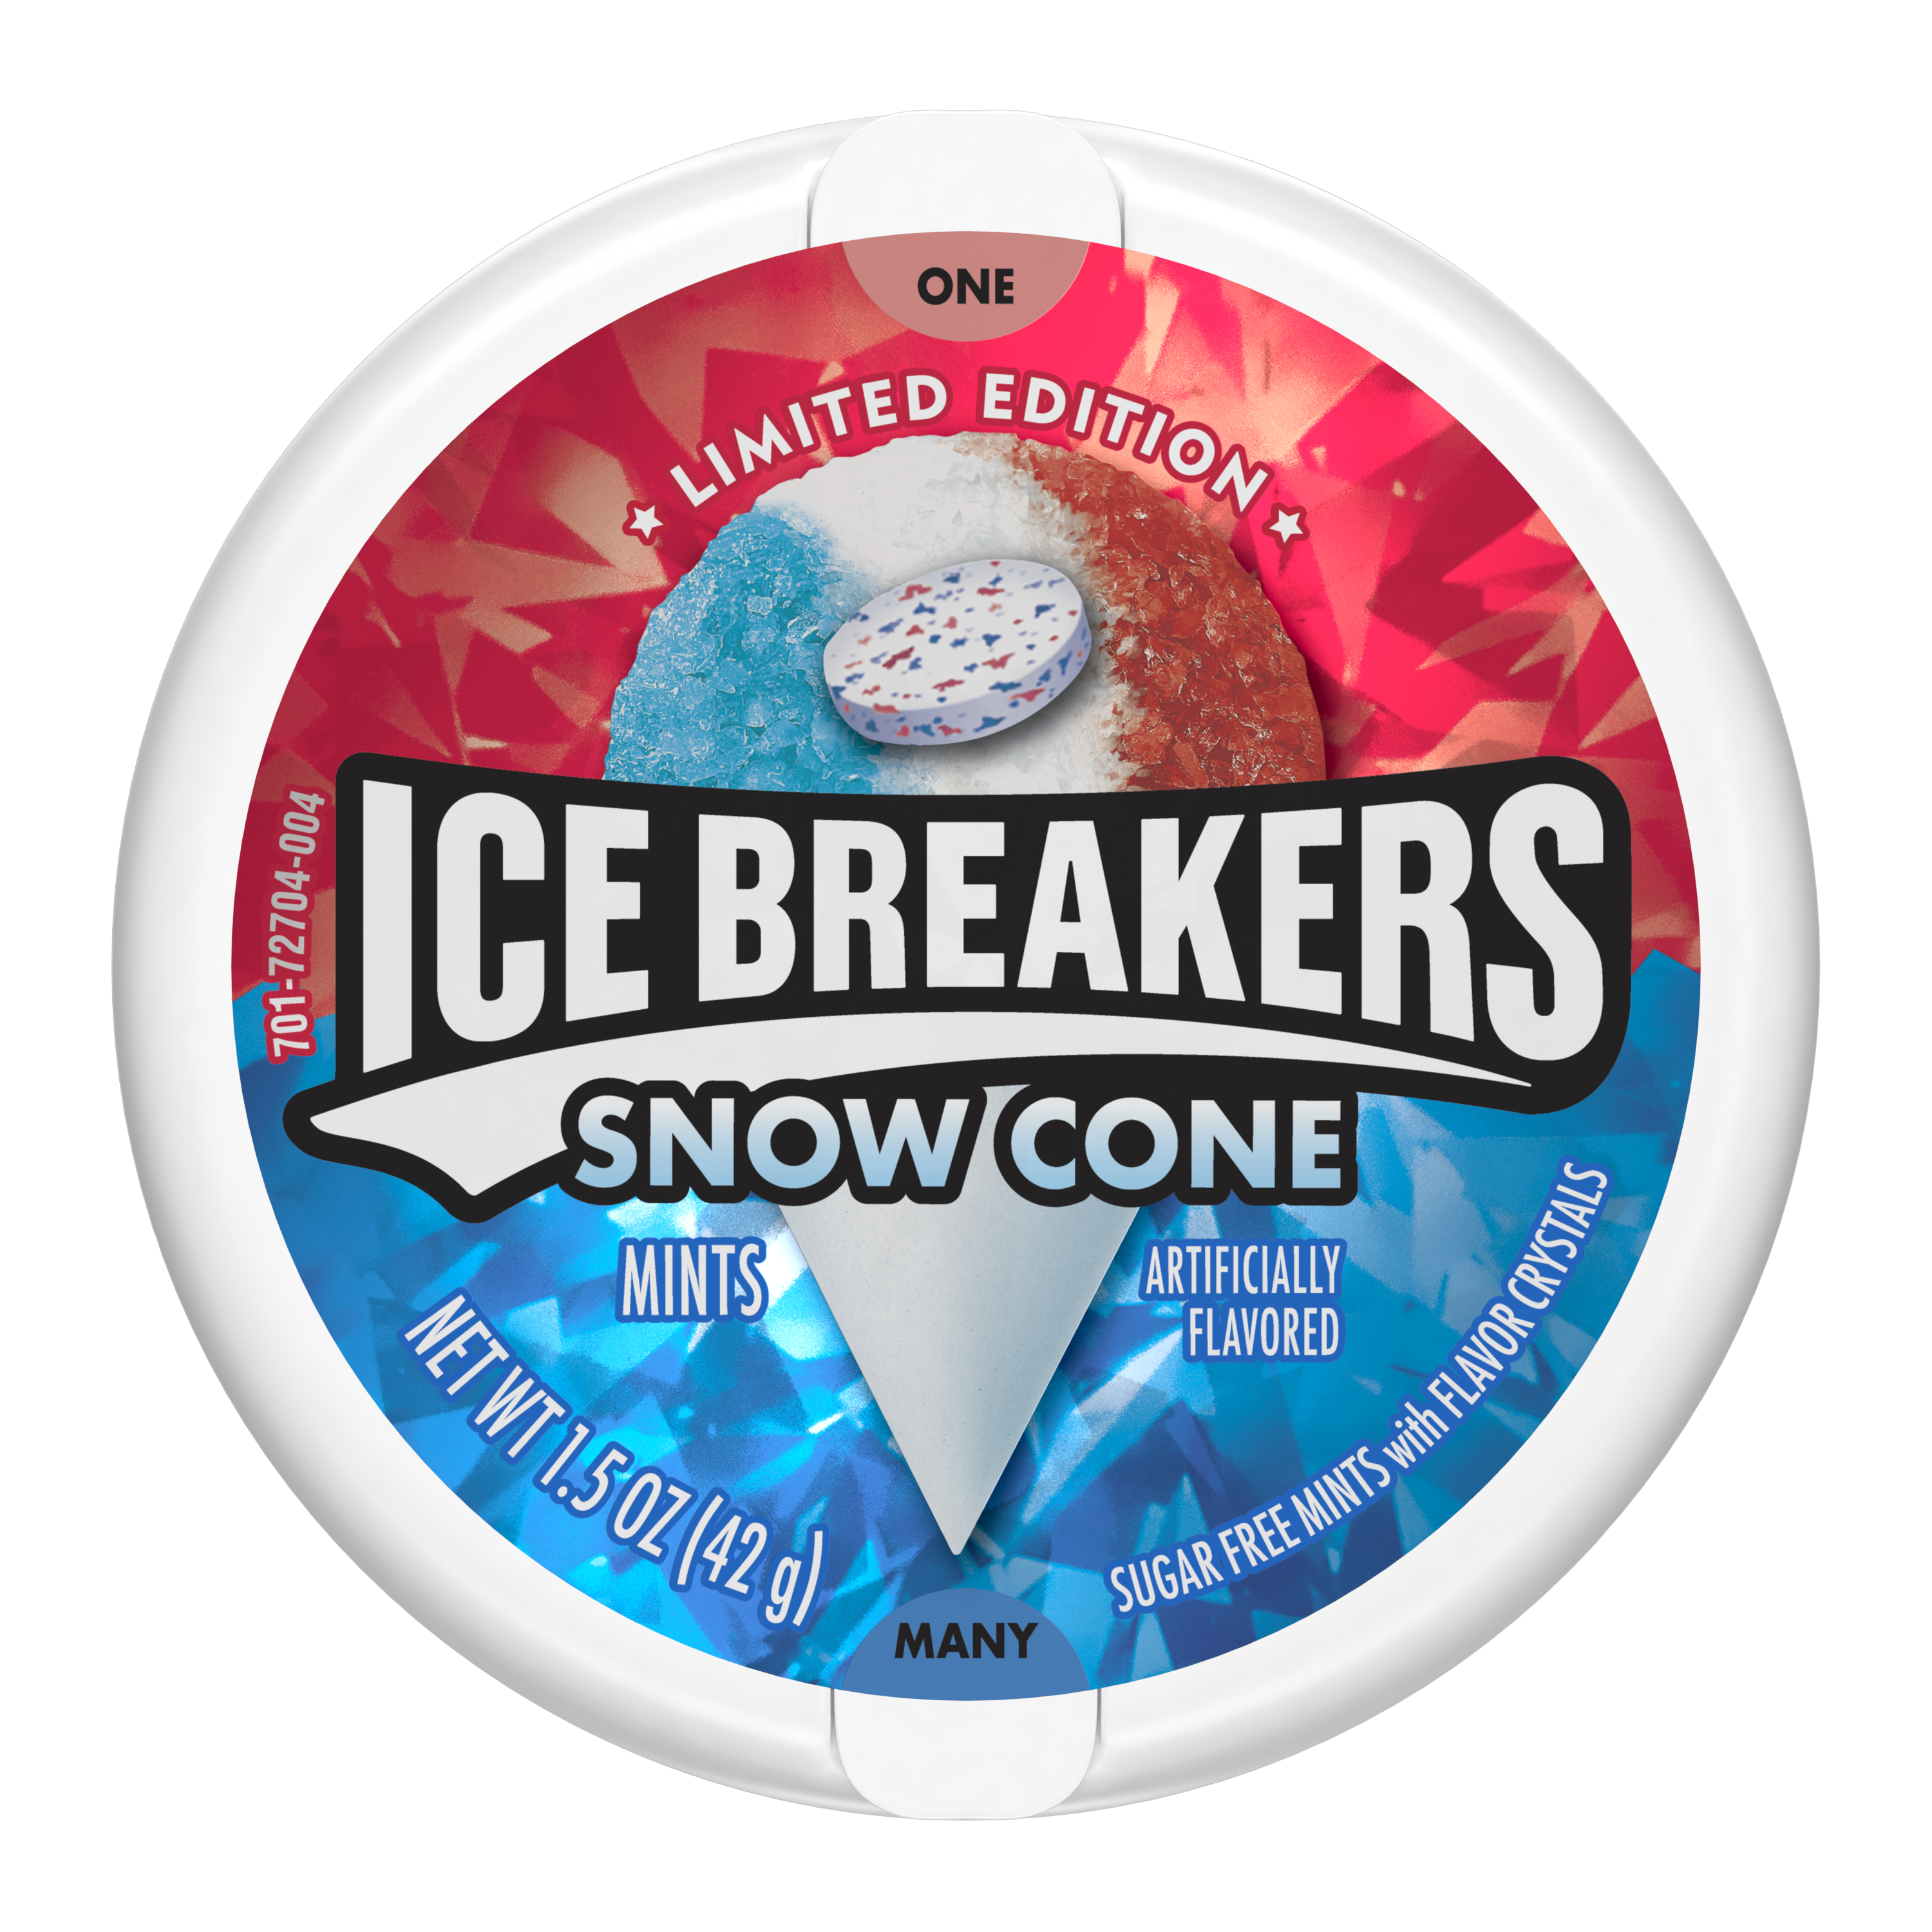 ICE BREAKERS Snow Cone Sugar Free Mints, 1.5 oz puck - Front of Package